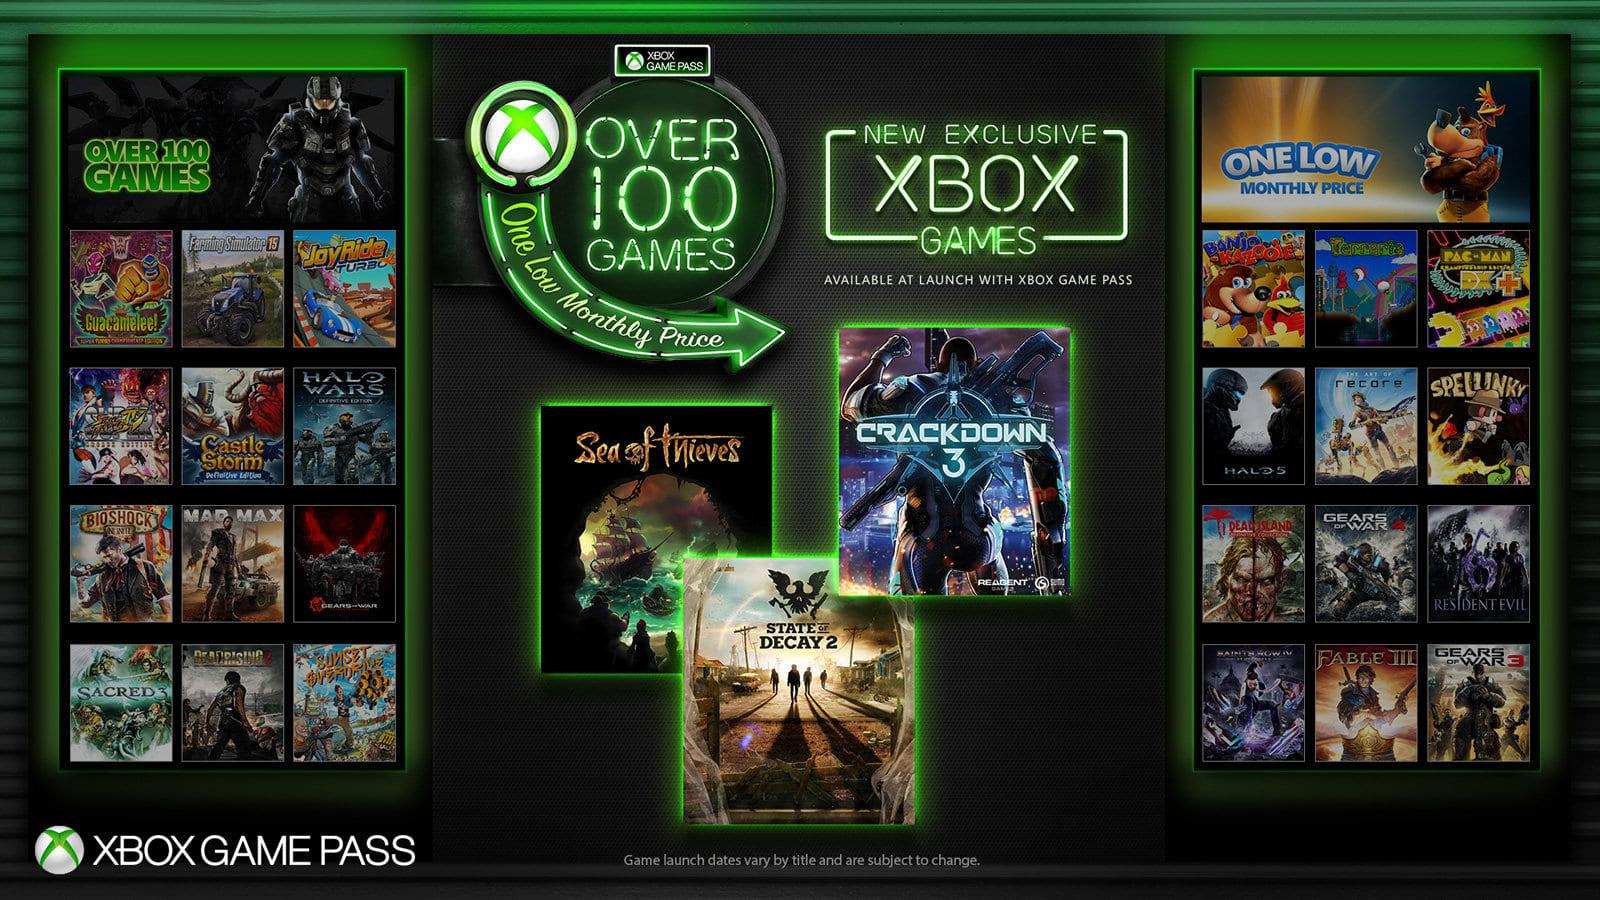 Xbox Game Pass Ultimate combines Gold and games for $15 a month ...